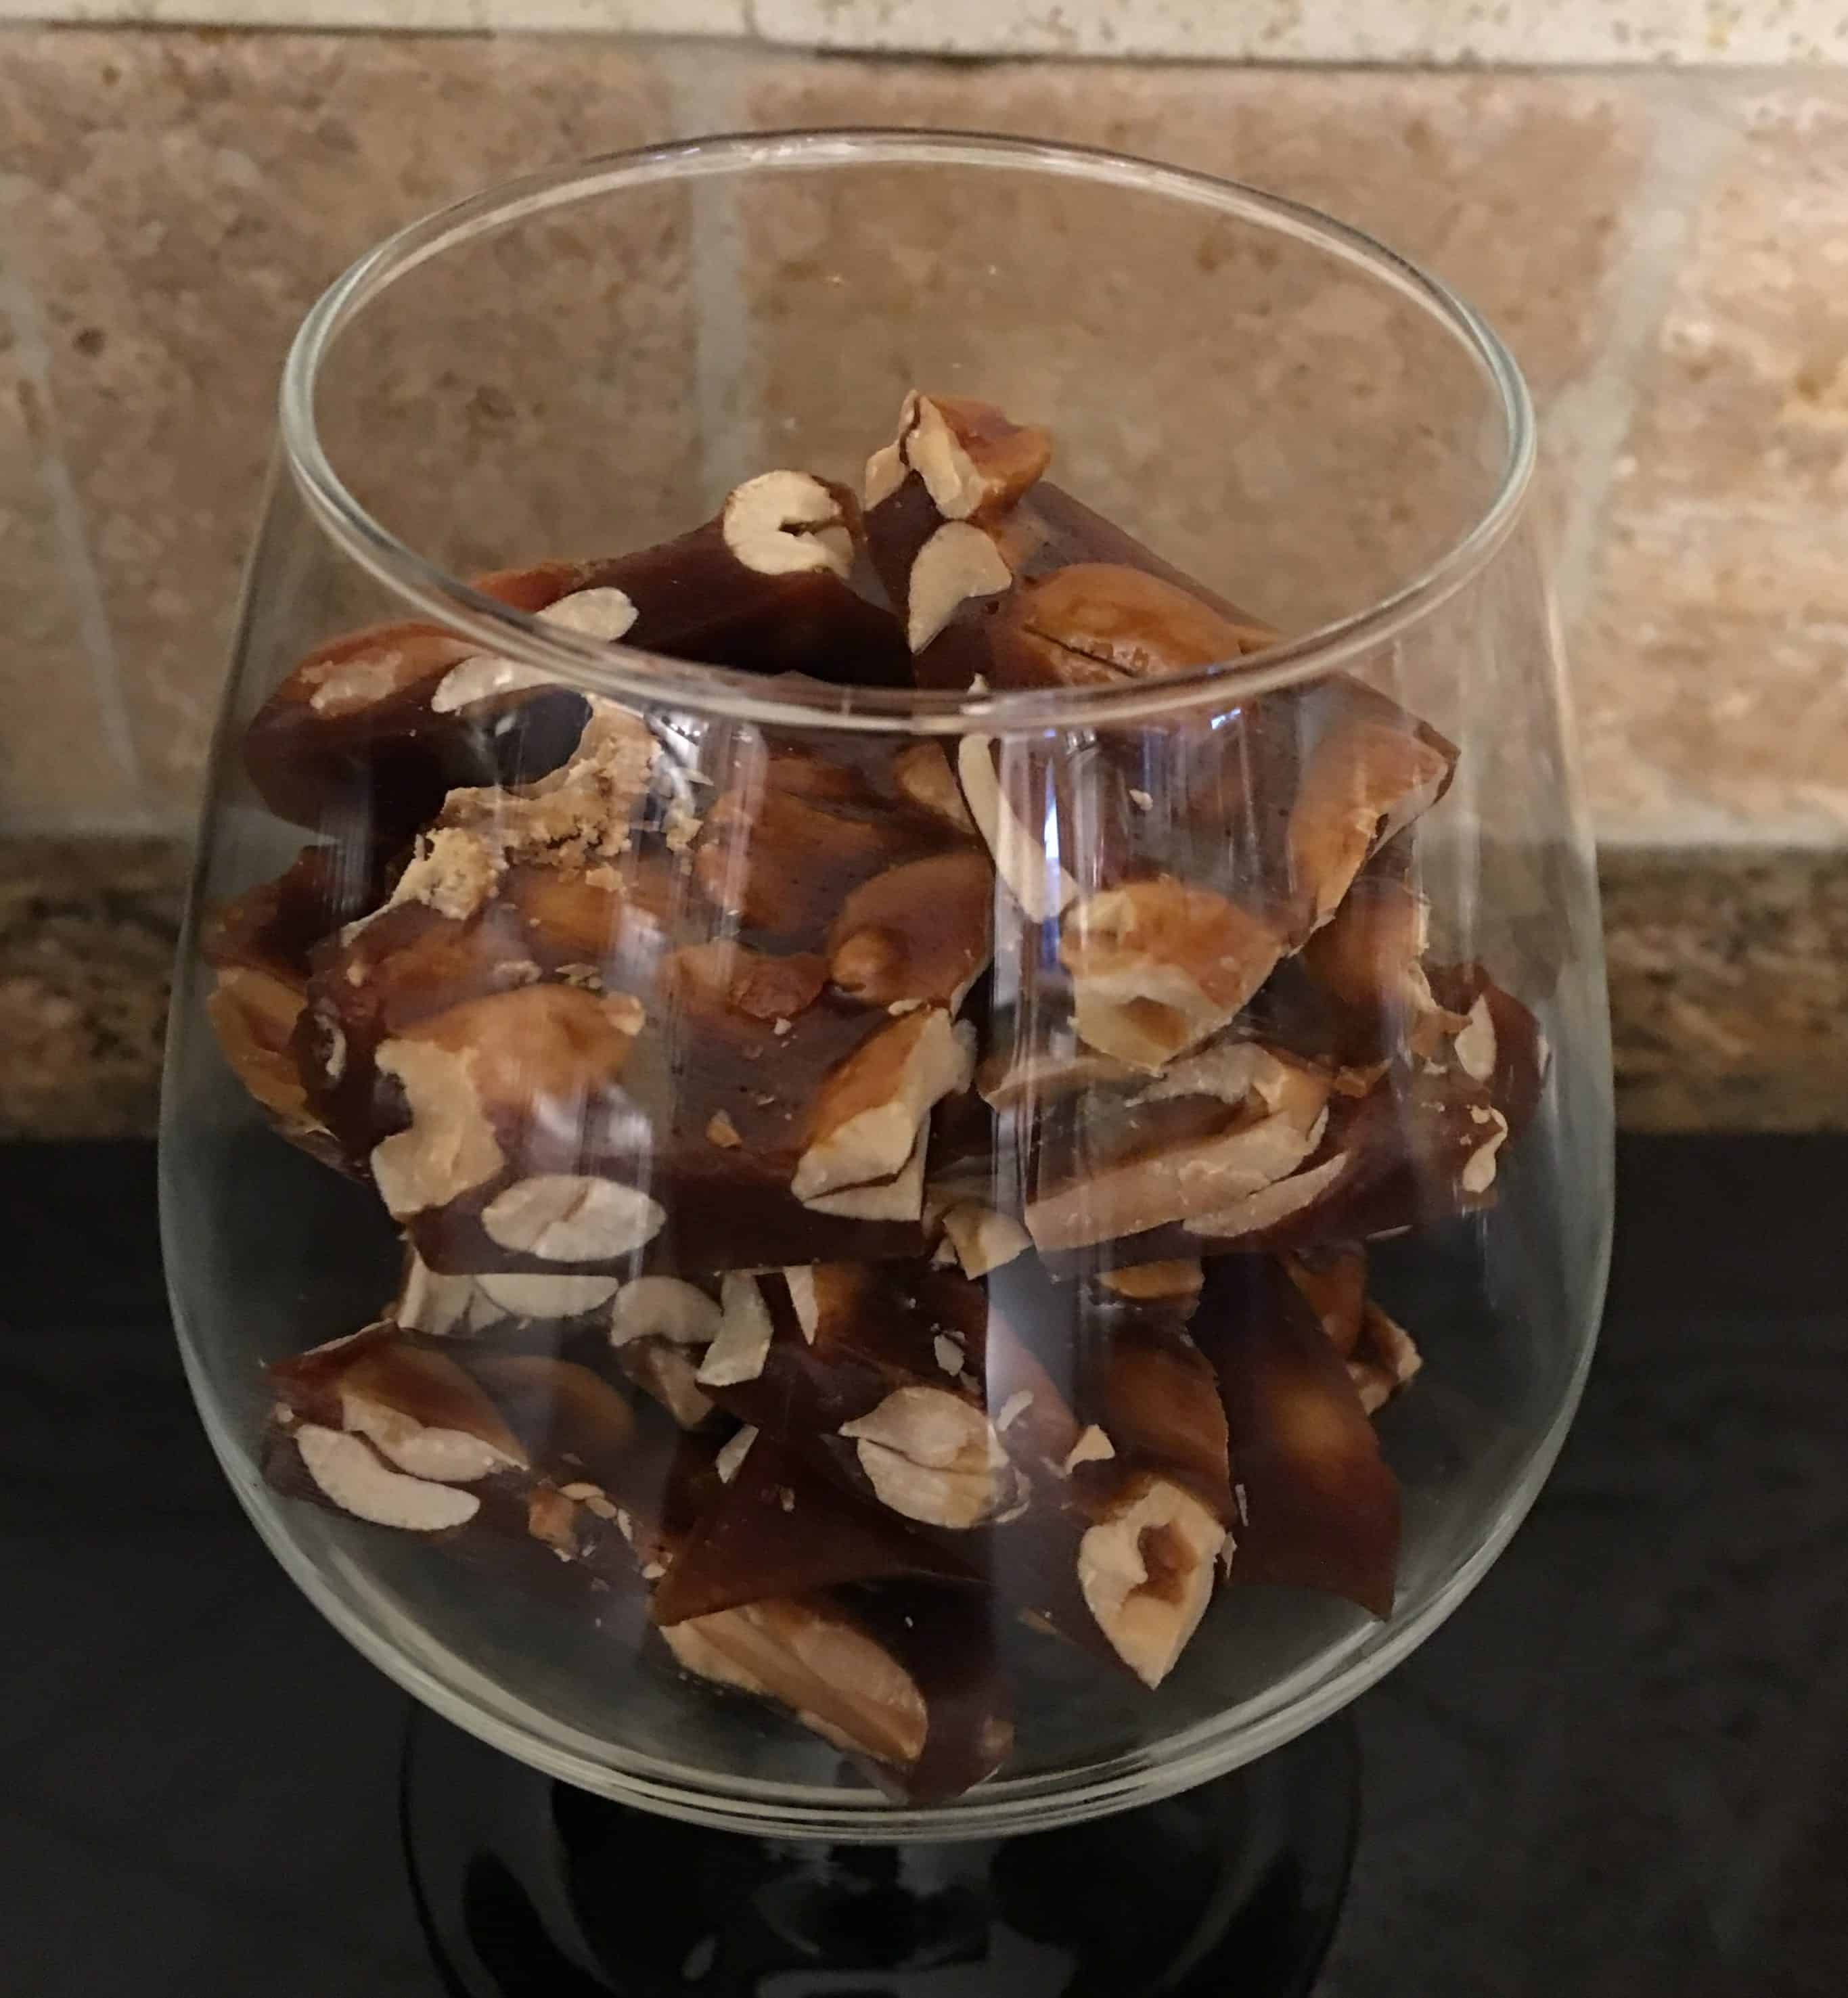 peanut brittle in a glass